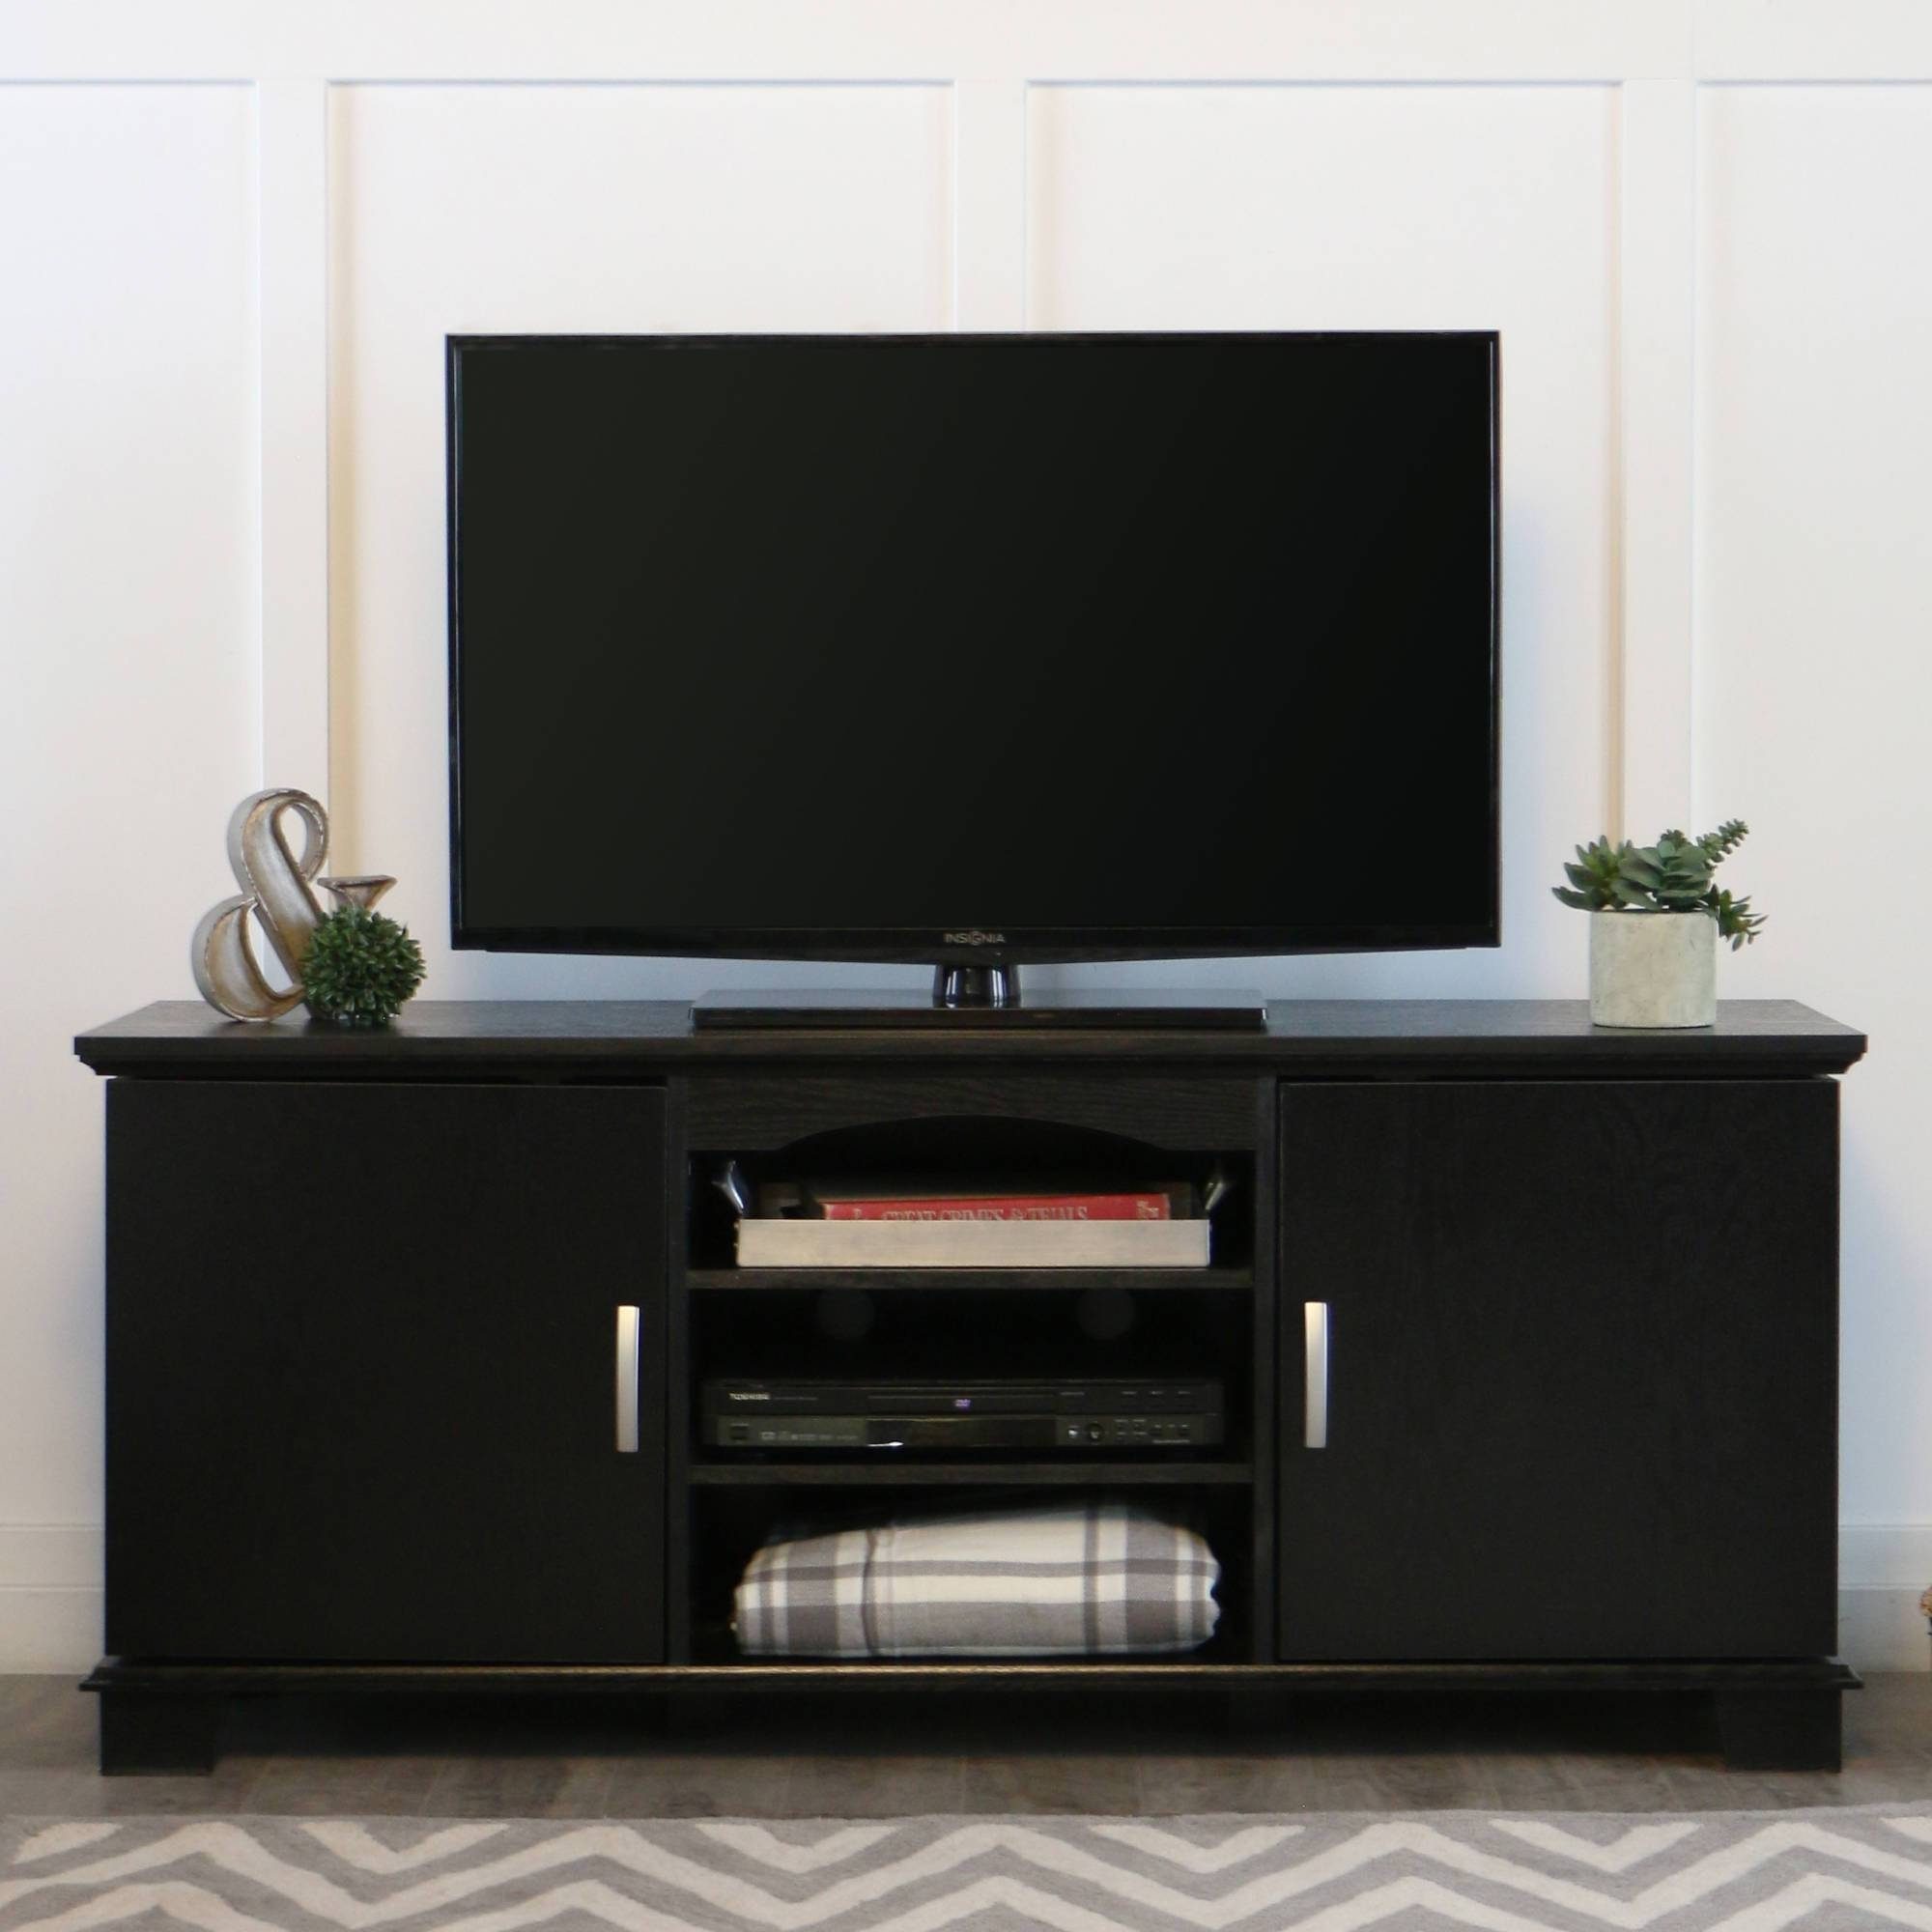 "Walker Edison Black Tv Stand For Tvs Up To 65"", Multiple Colors for Tv Stands for Large Tvs (Image 14 of 15)"